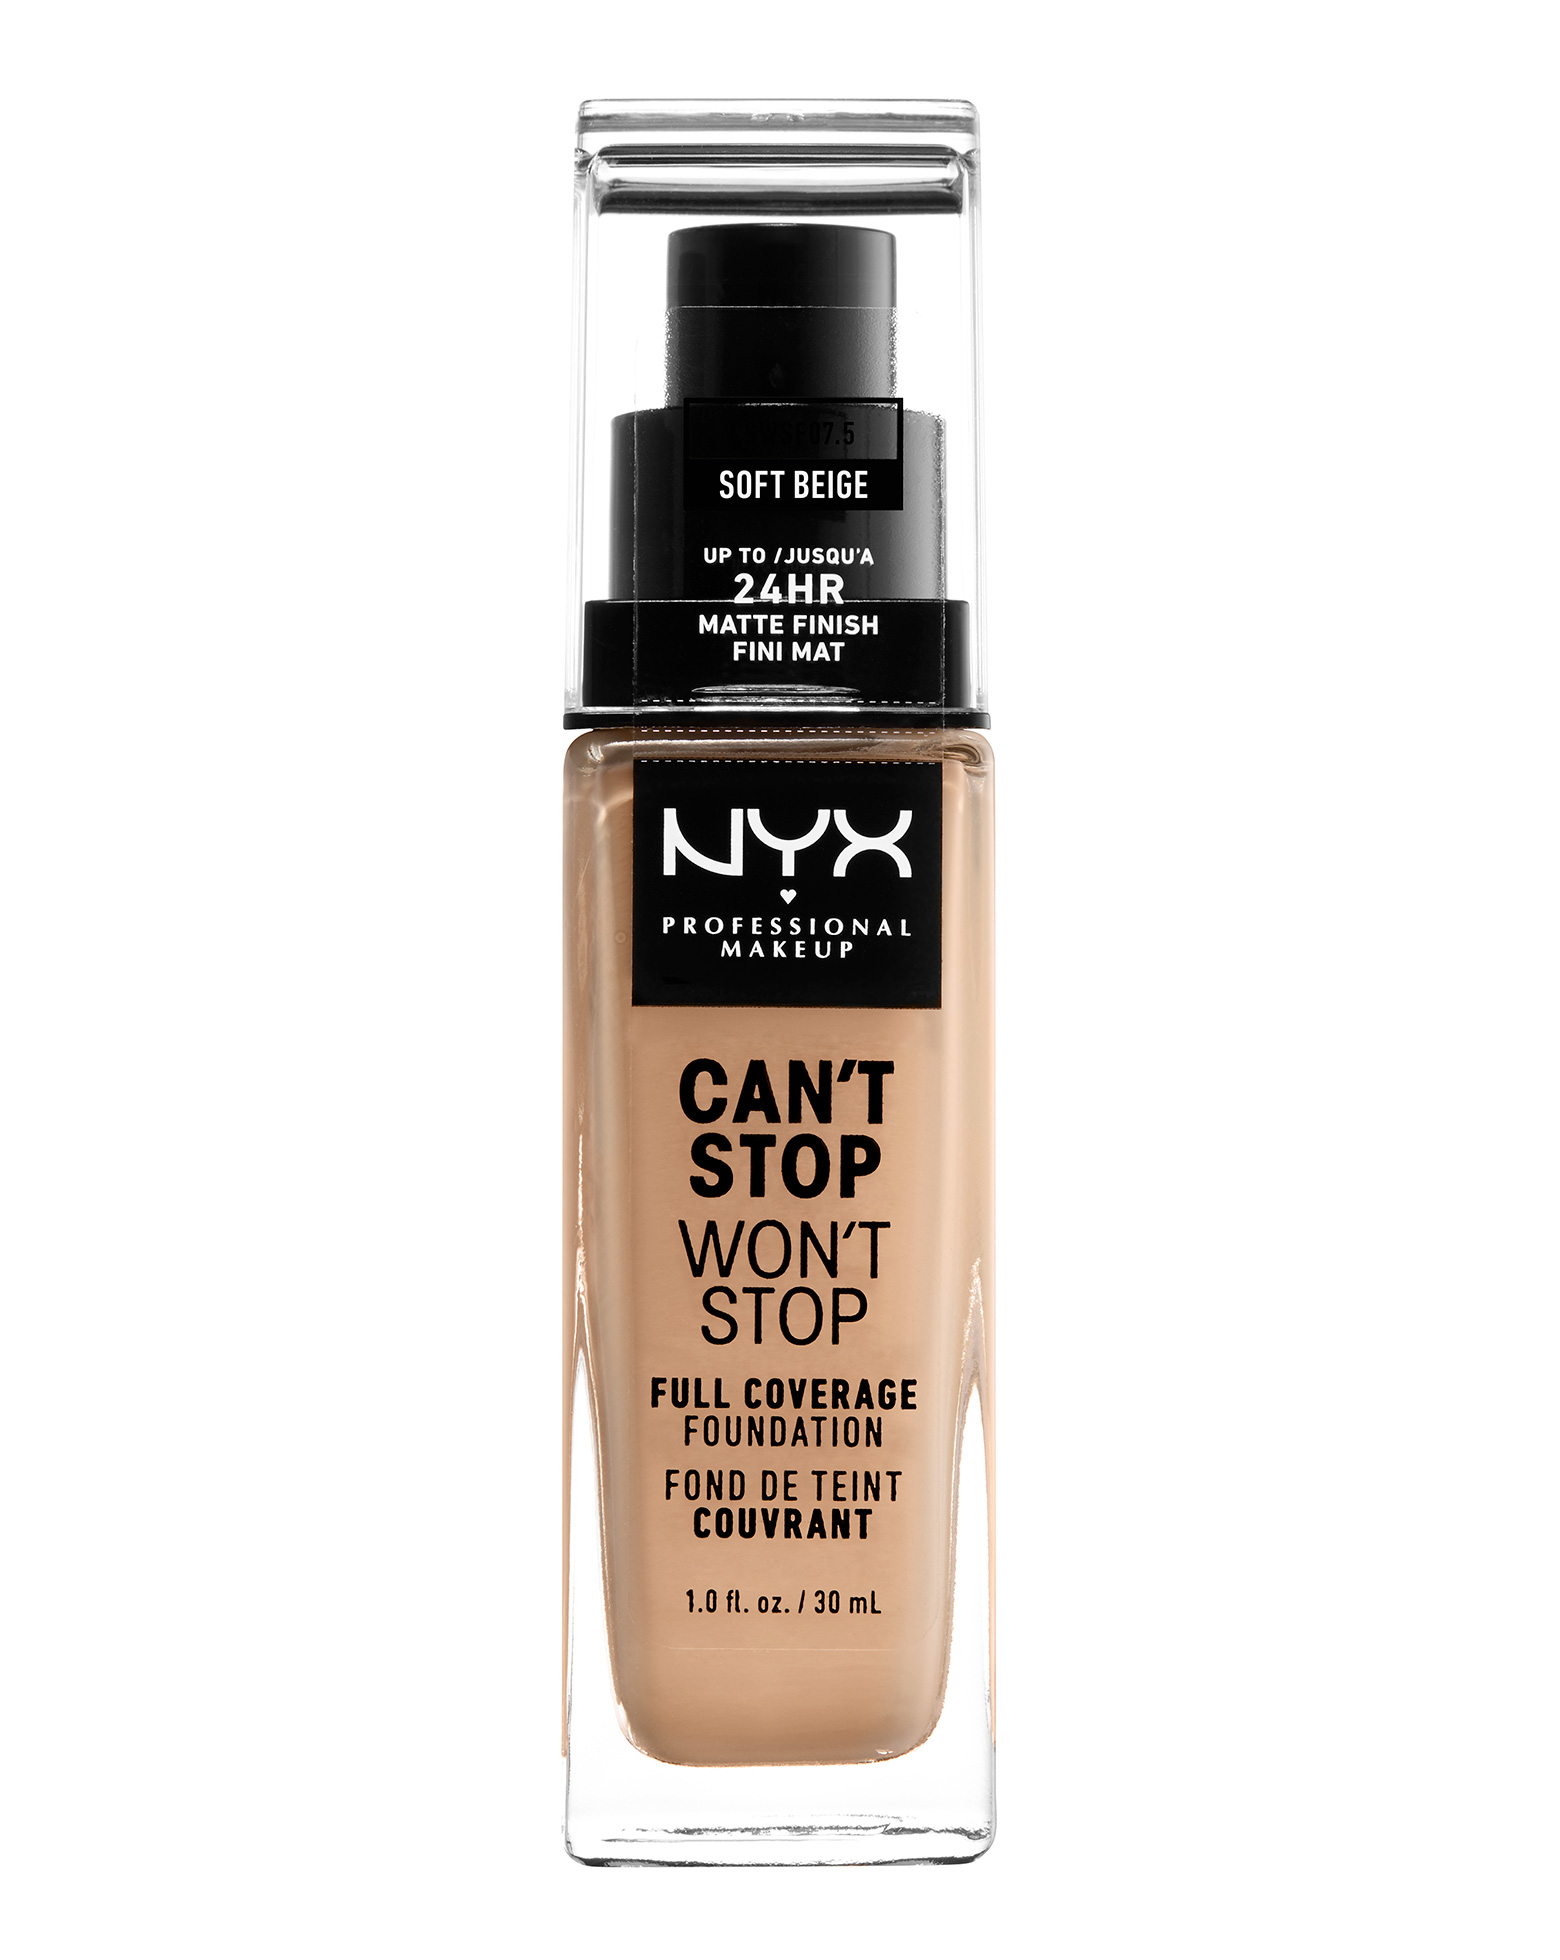 Can't Stop Won't Stop 24 Hour Foundation by NYX Professional Makeup